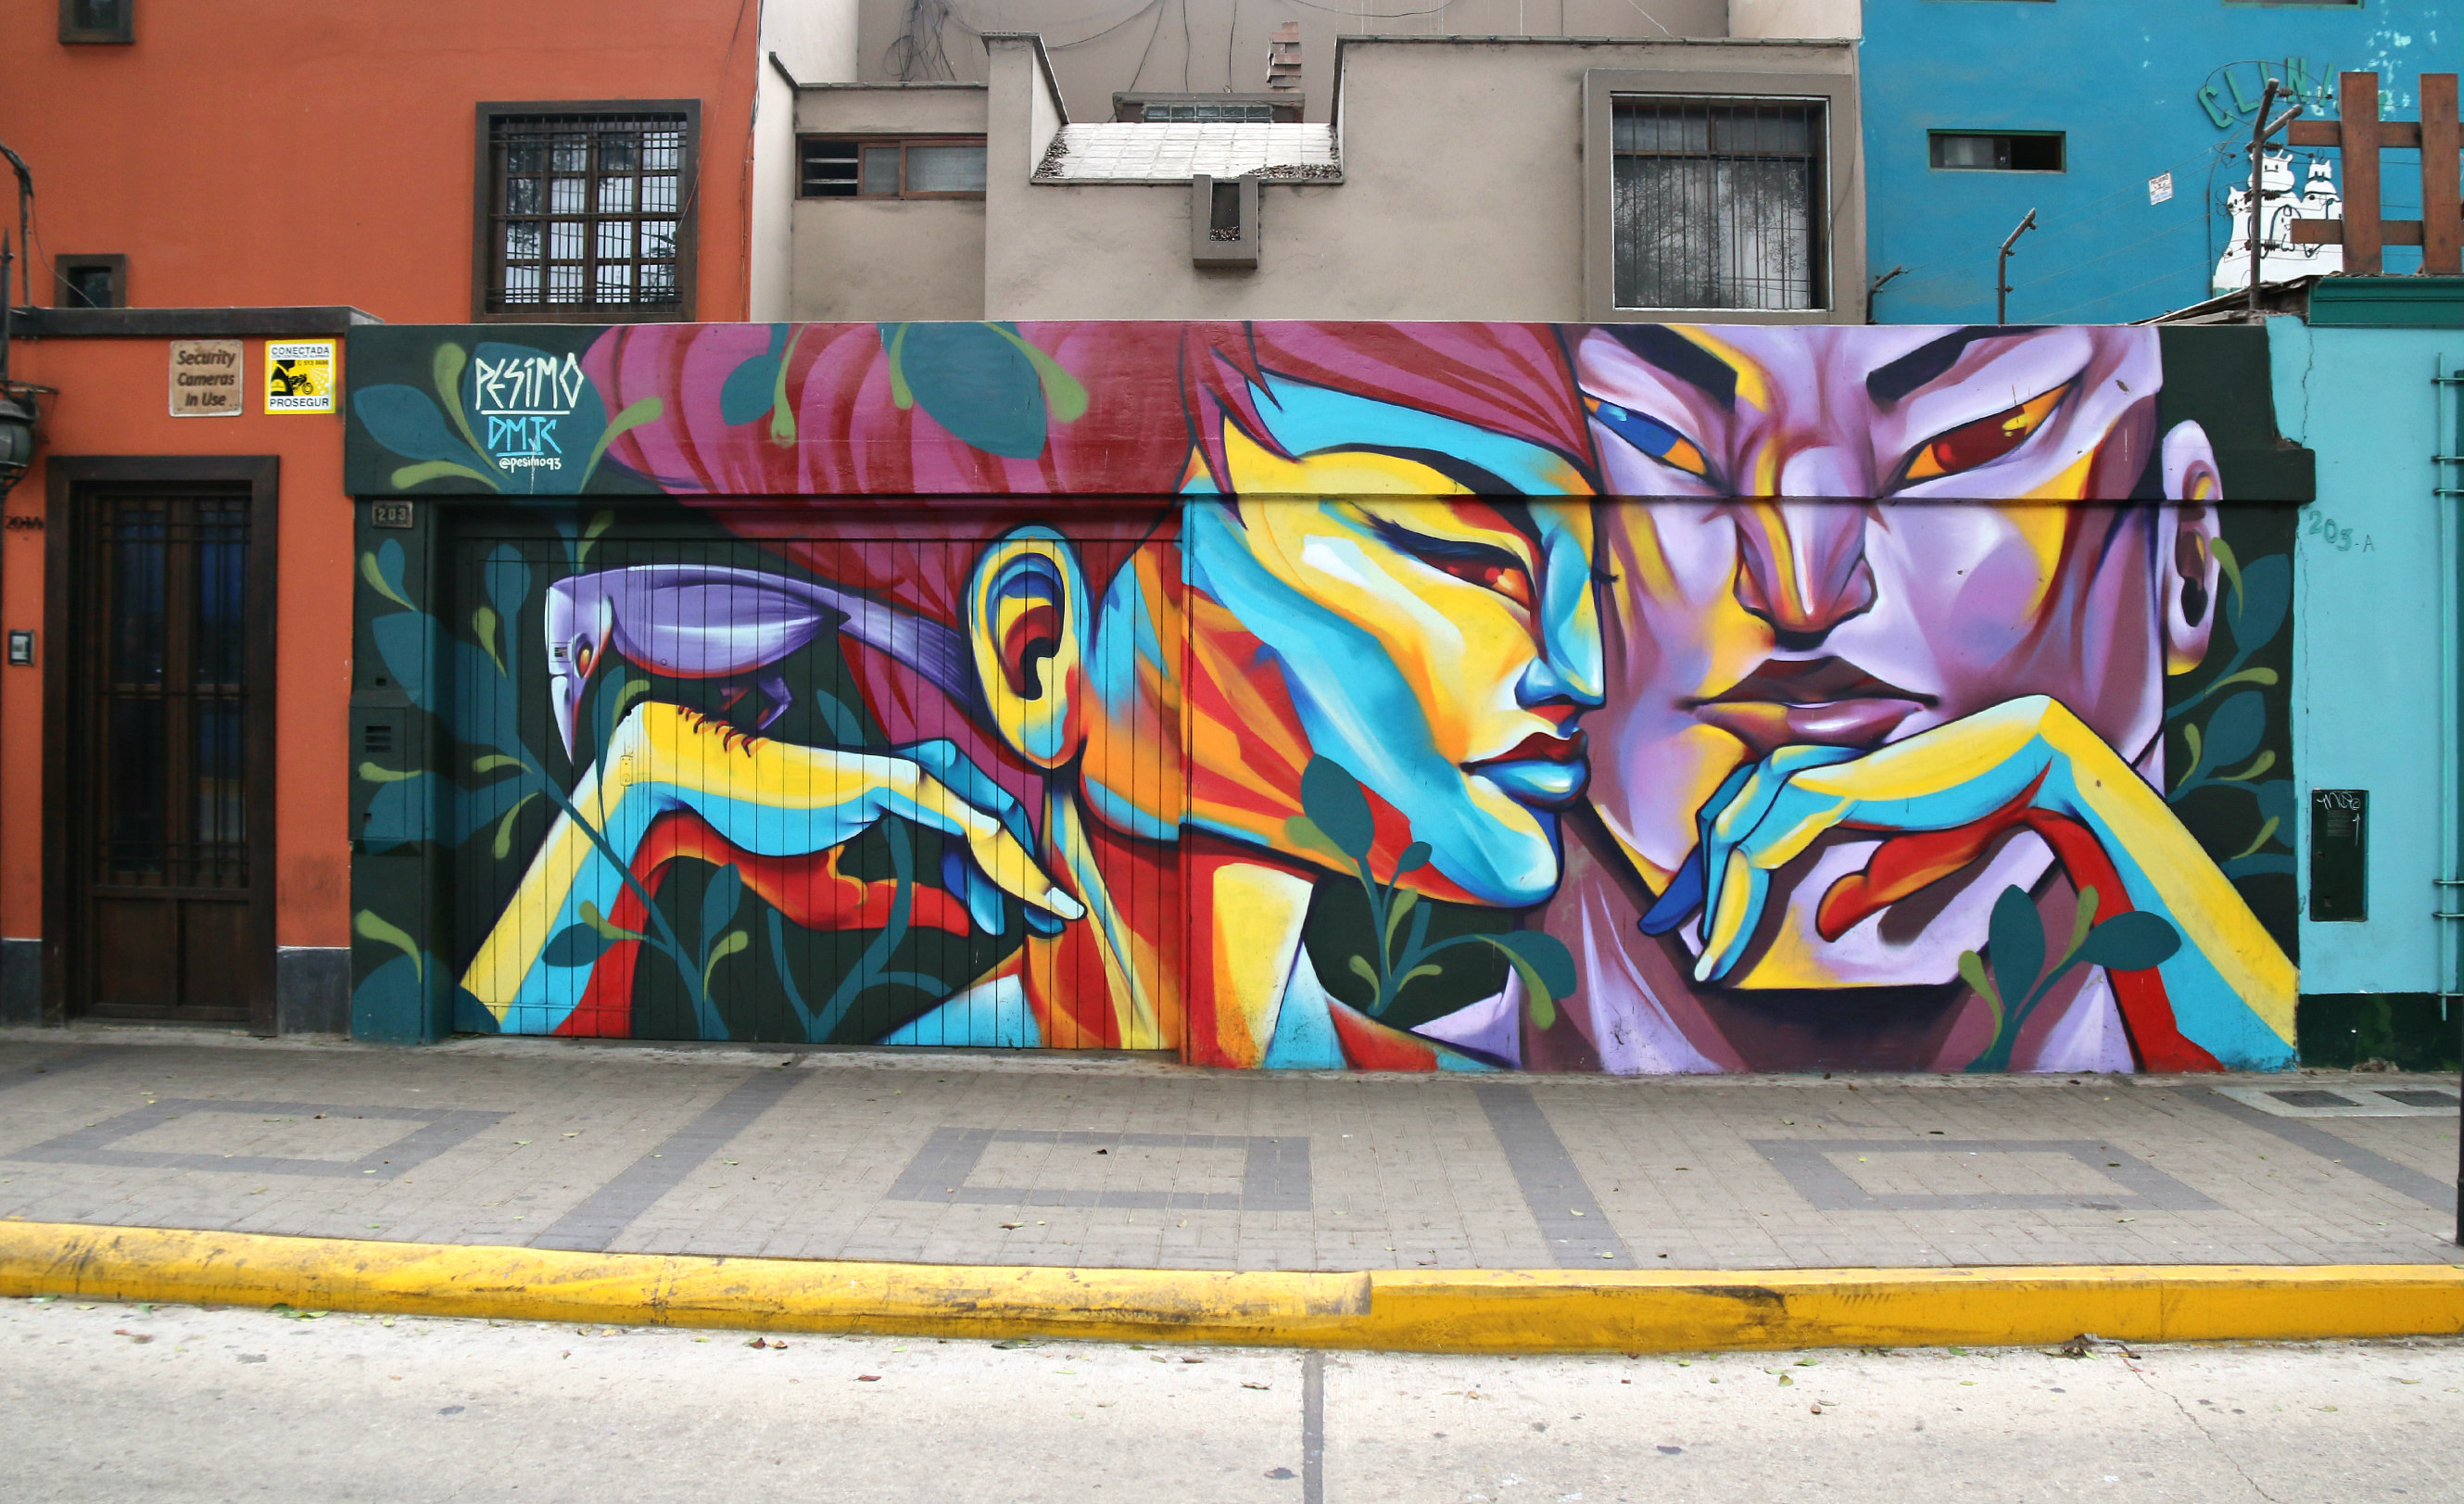 where to to find street art in Barranco, Lima on av. Pedro de Osma, mural by Pésimo 4